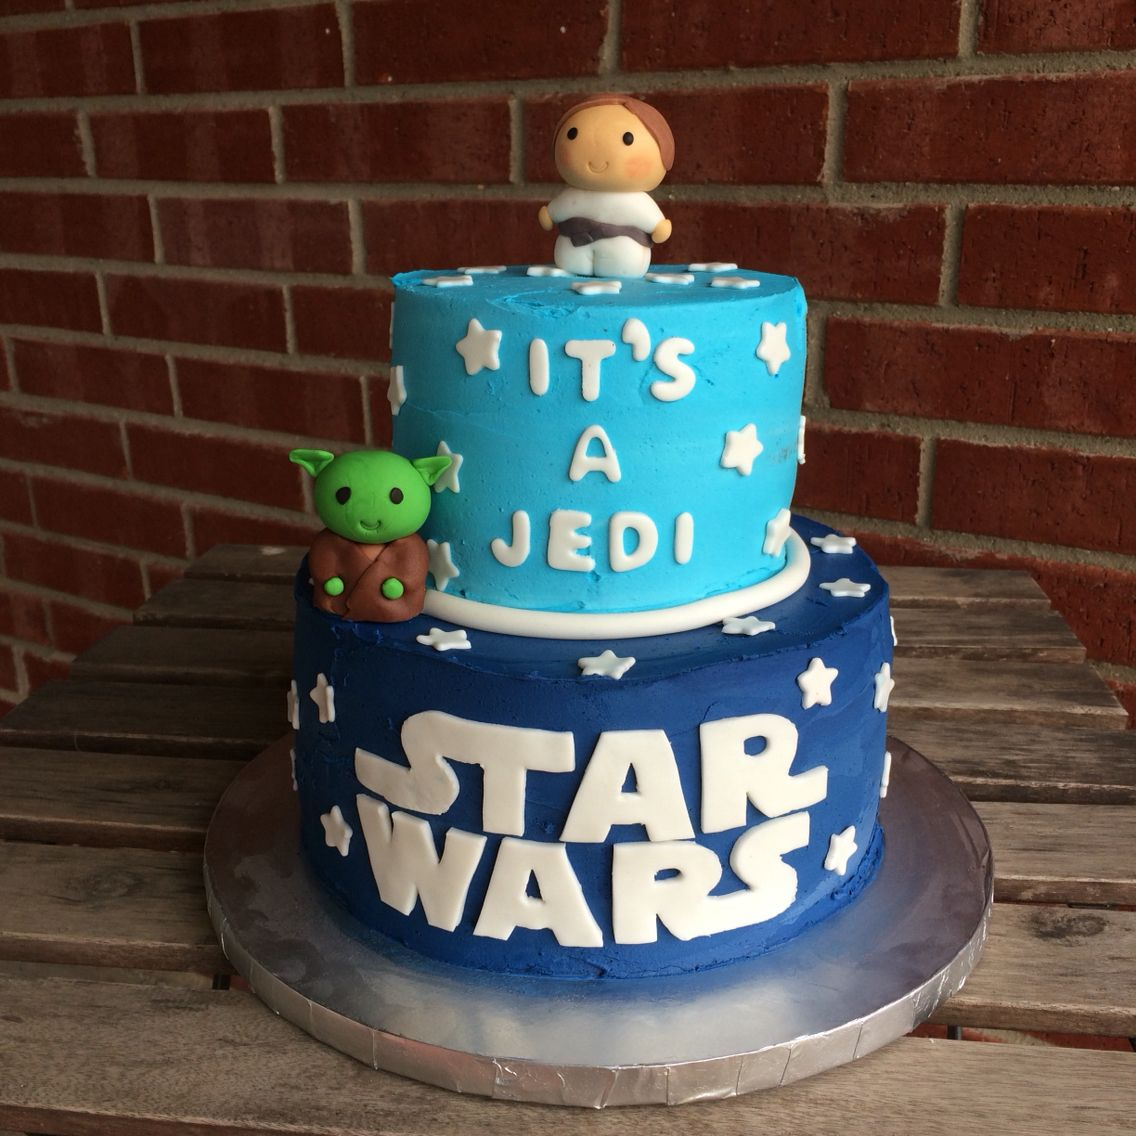 Star Wars Baby Shower Cake These Would Be Cute For Your Shower! | ASHLIN |  Pinterest | Star Wars Baby, Shower Cakes And Babies